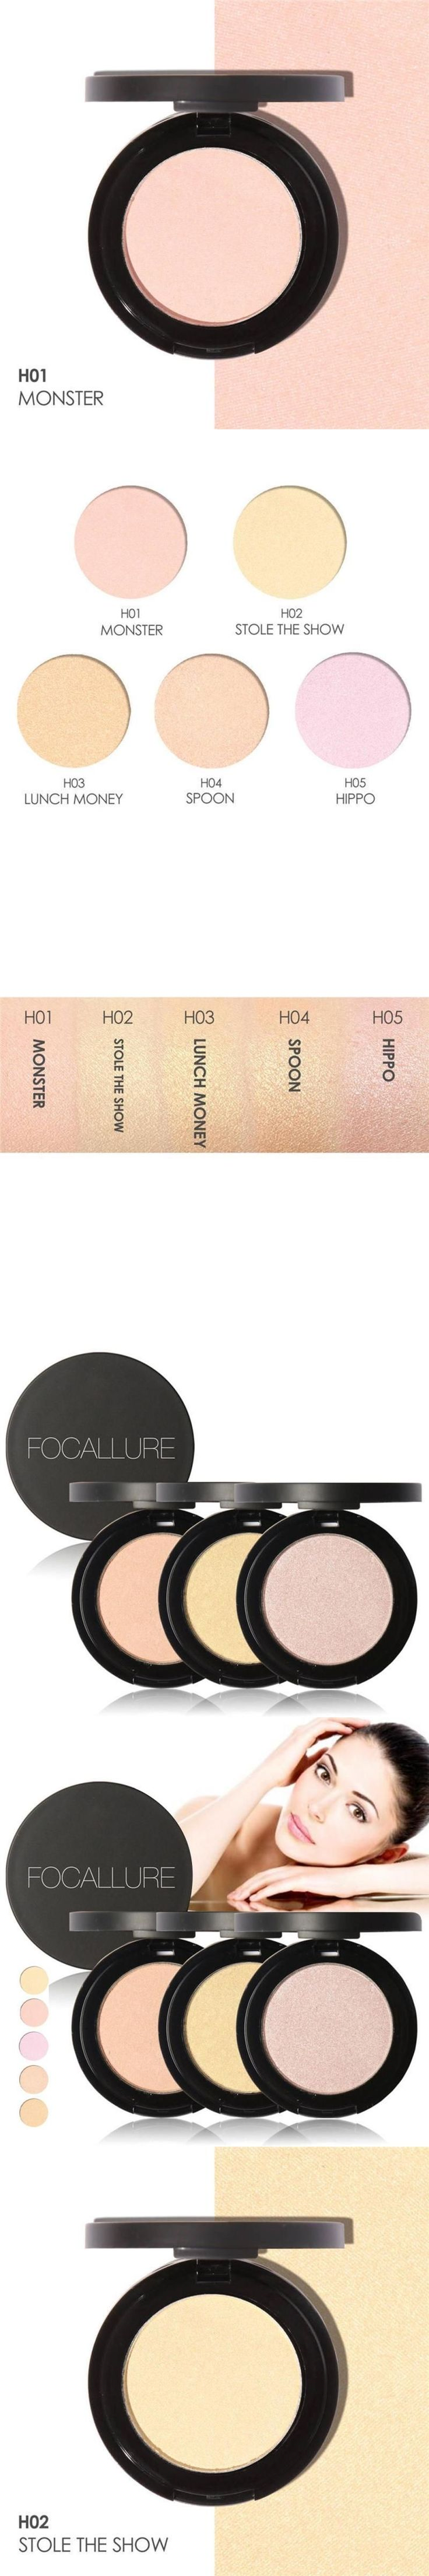 FOCALLURE Makeup Face Highlighter Bronzer Press Powder Brightener Highlight and Contour Palette Easy to Wear Cosmetic Powder Z3